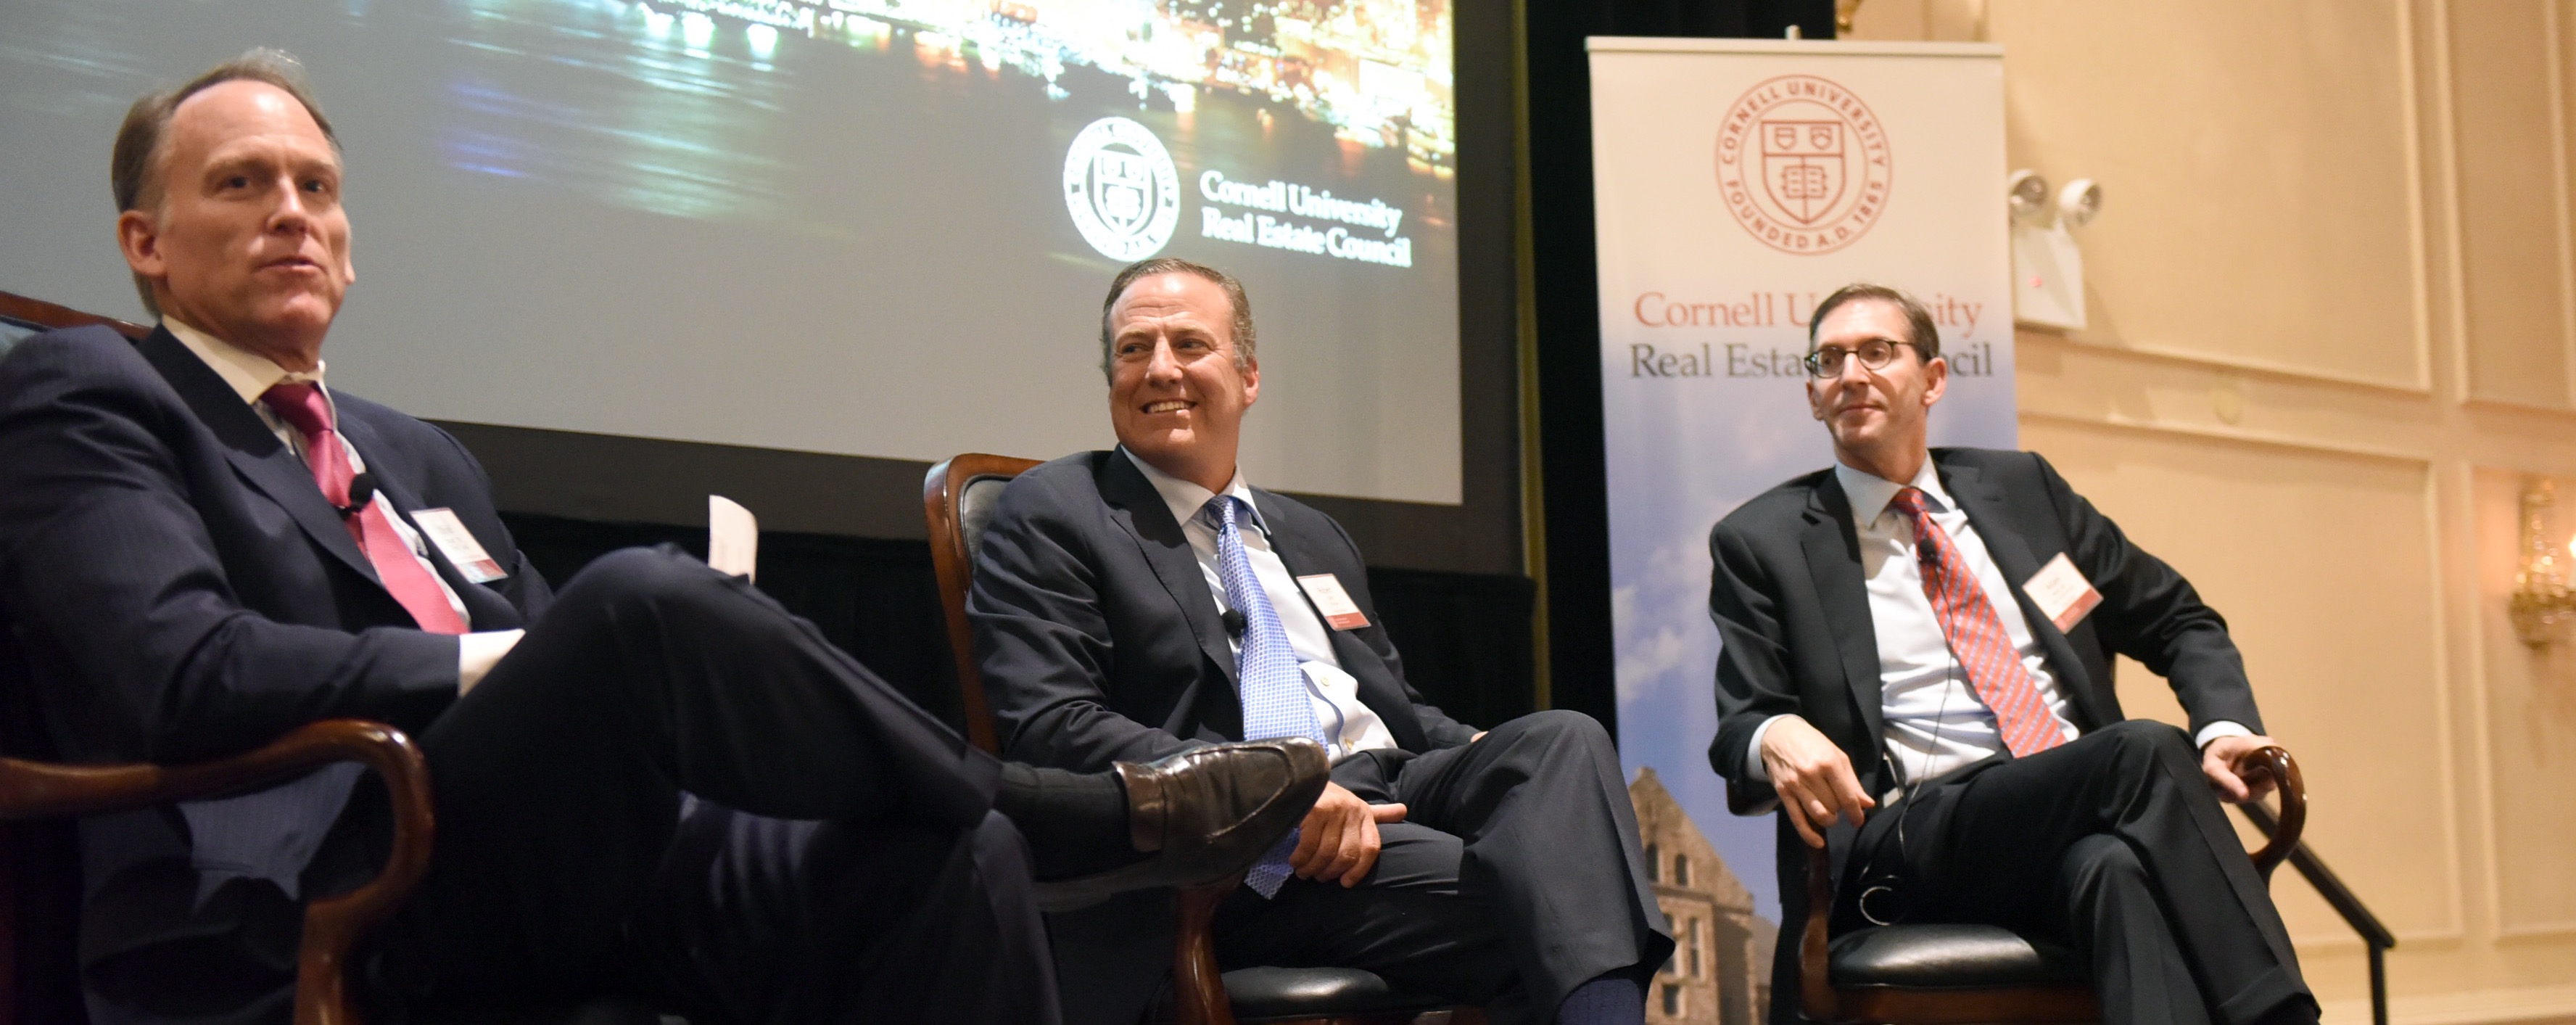 2016 Cornell Real Estate Conference Panels: Analysis of Investment Trends